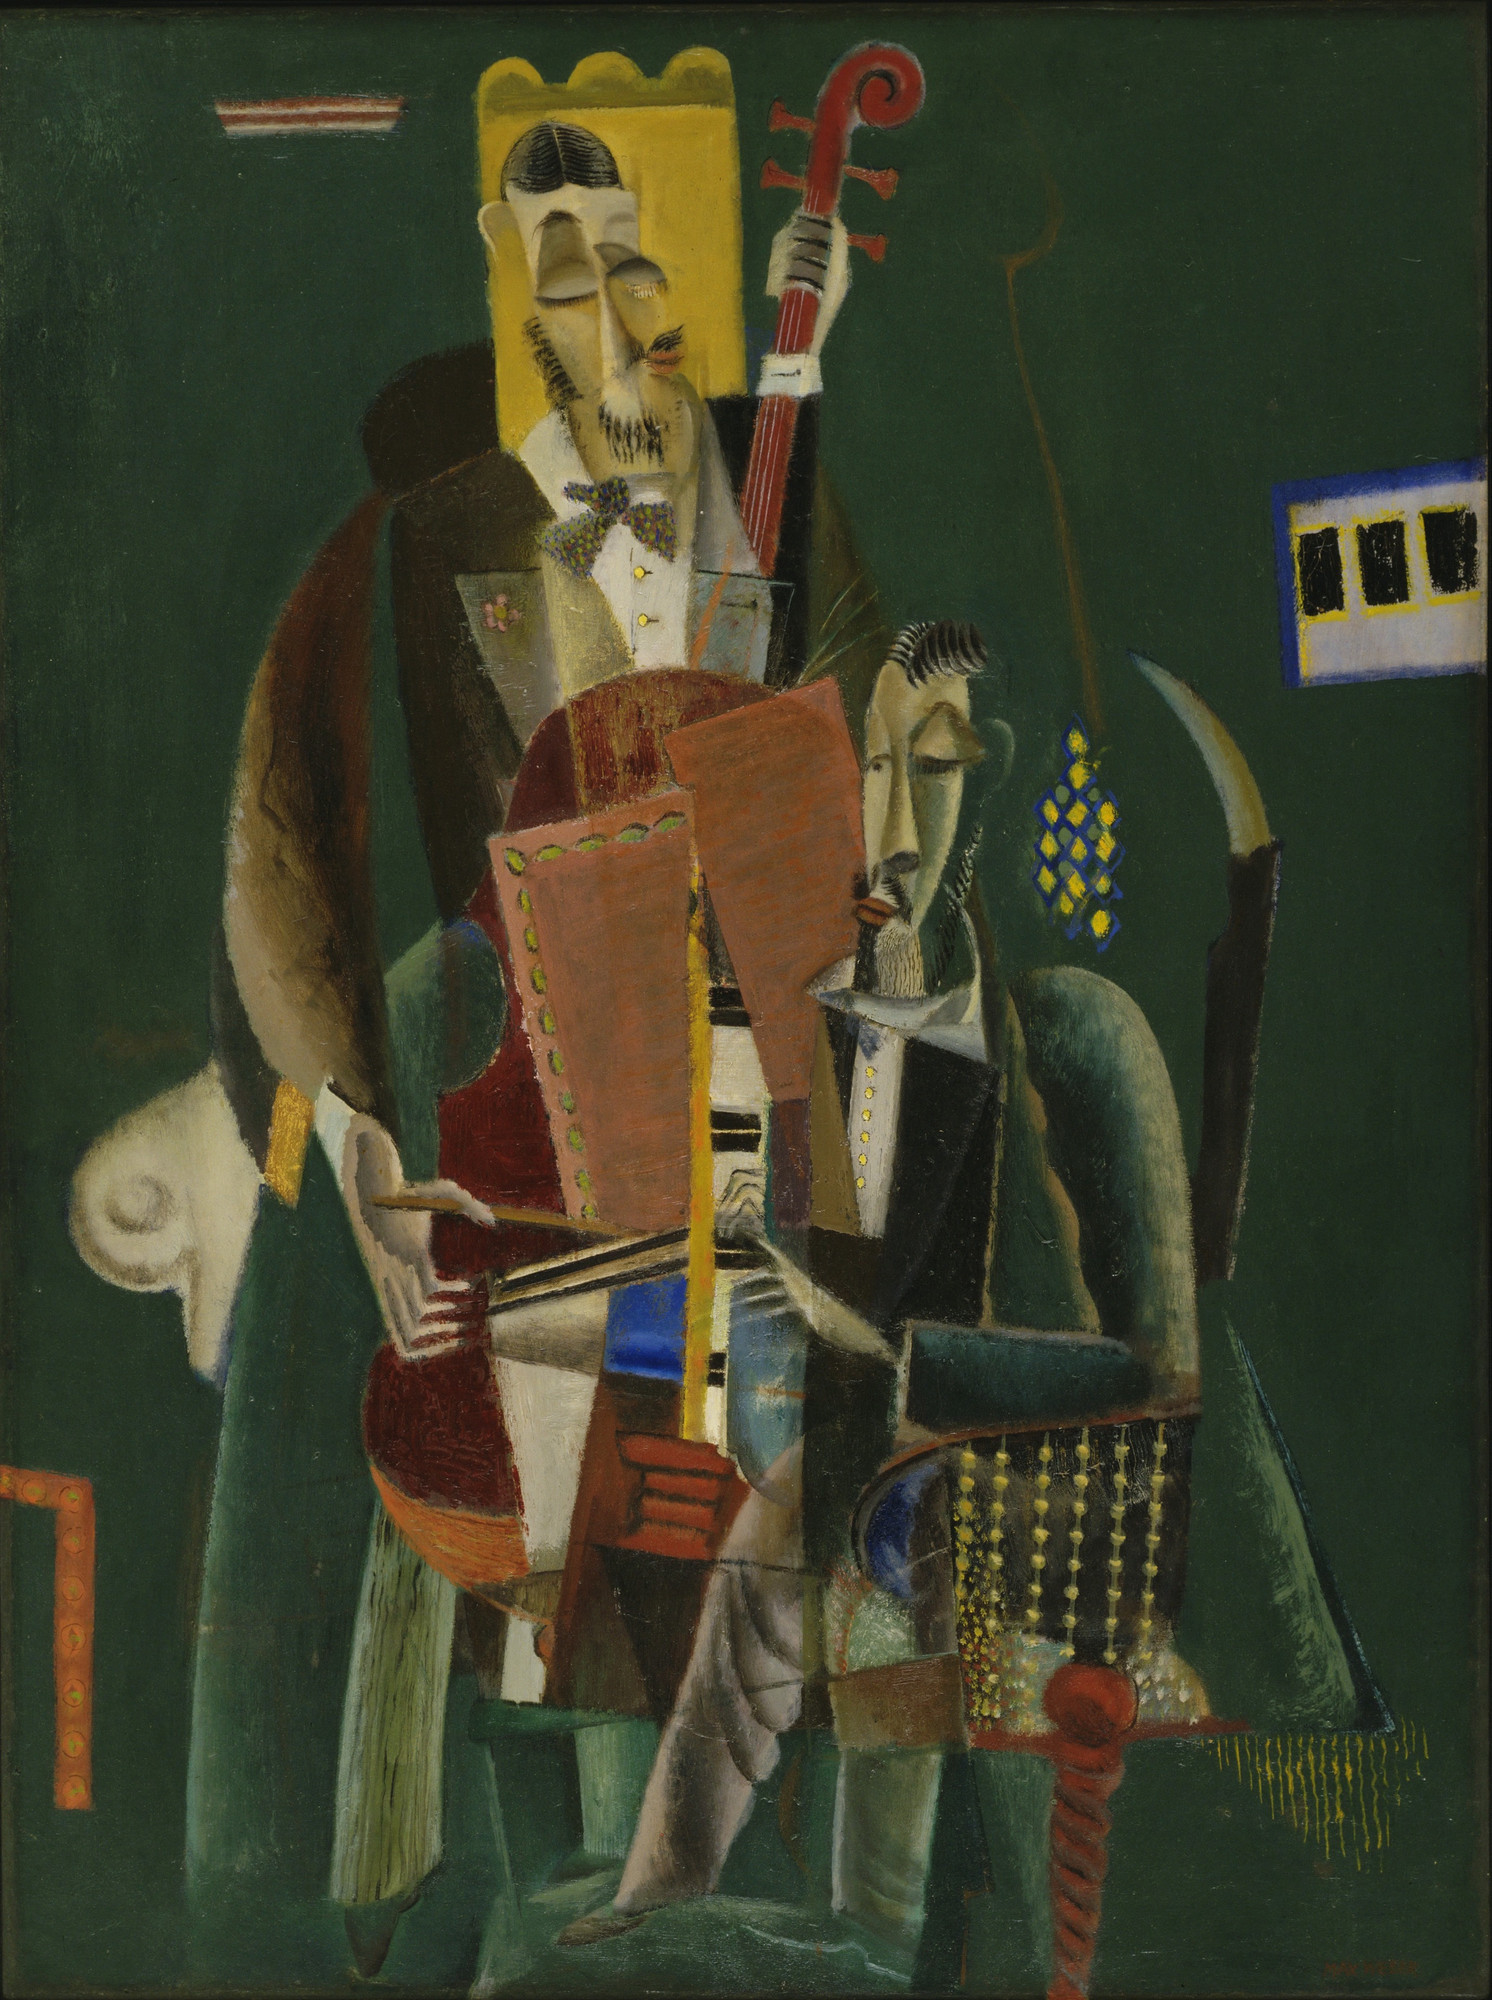 Max Weber. The Two Musicians. 1917